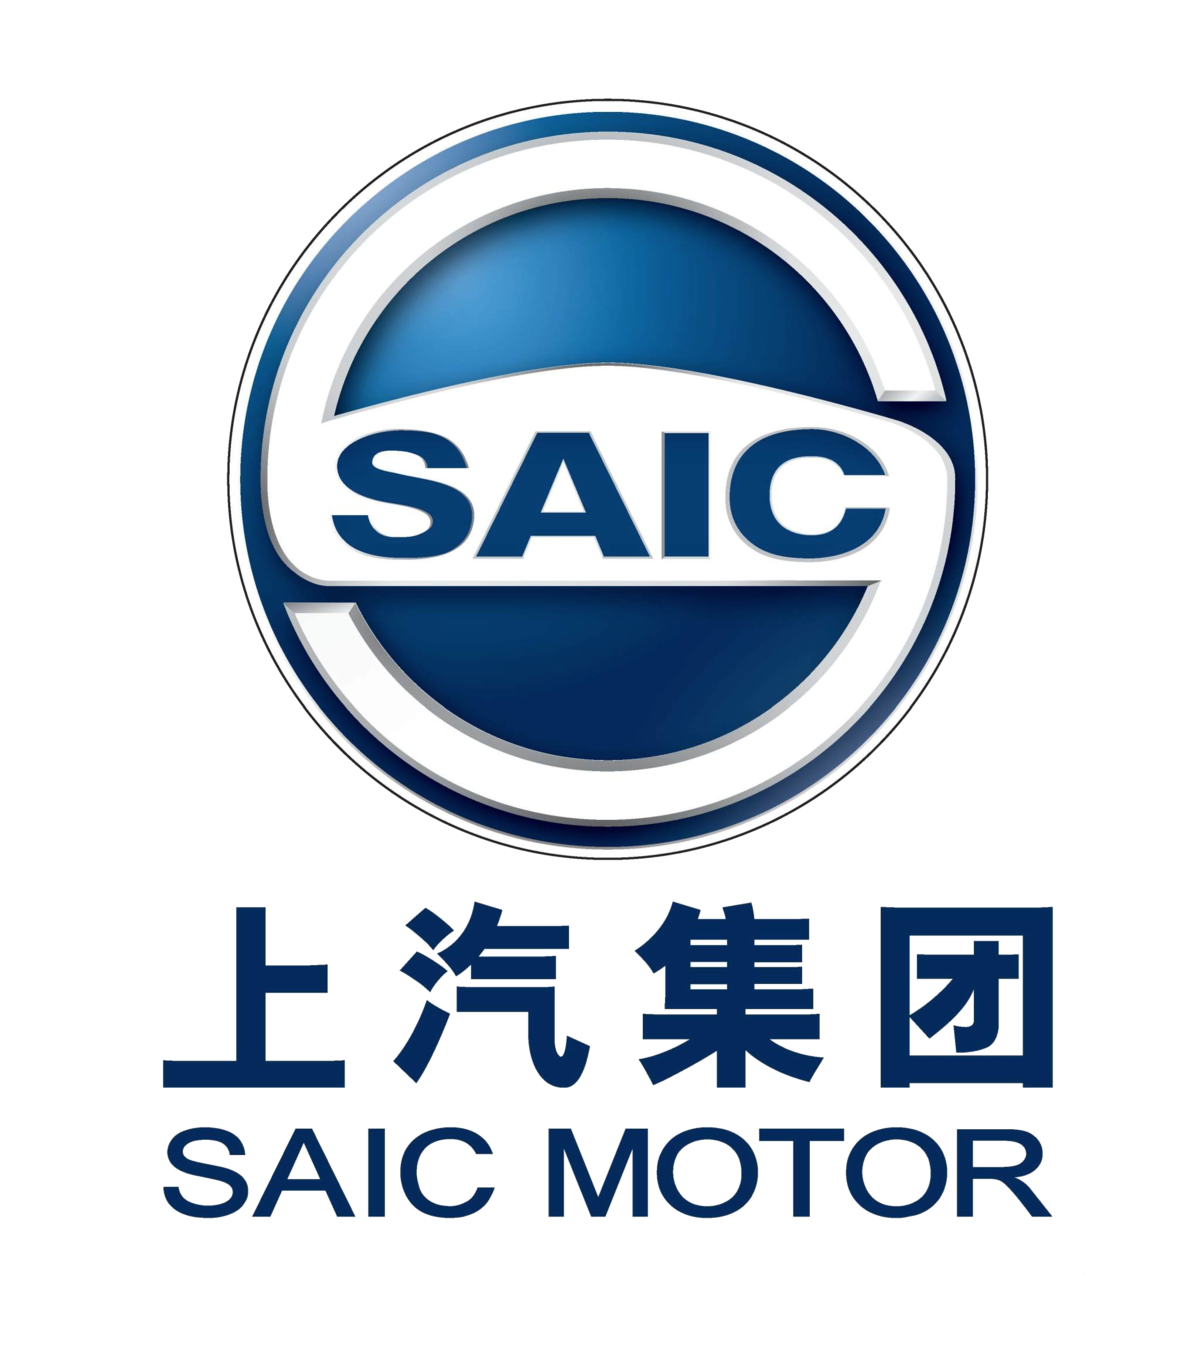 Motor vector corporation. Saic wikipedia